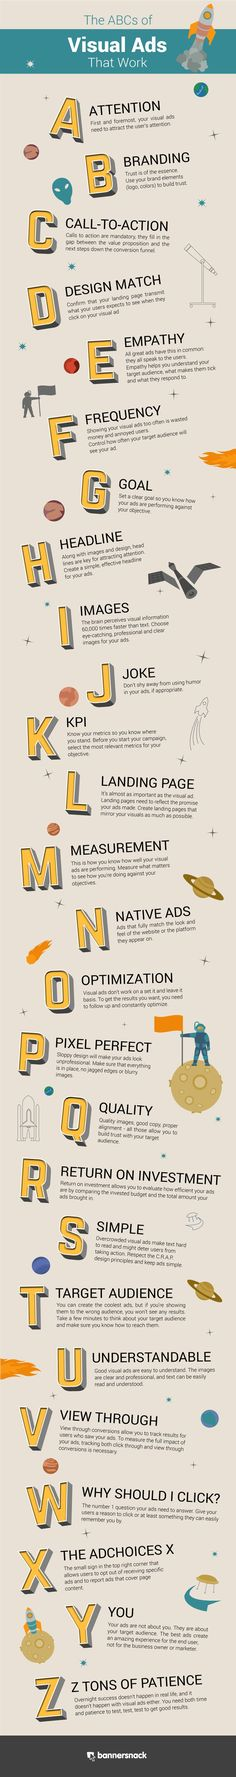 The ABC of Visual Ads That Work [INFOGRAPHIC]